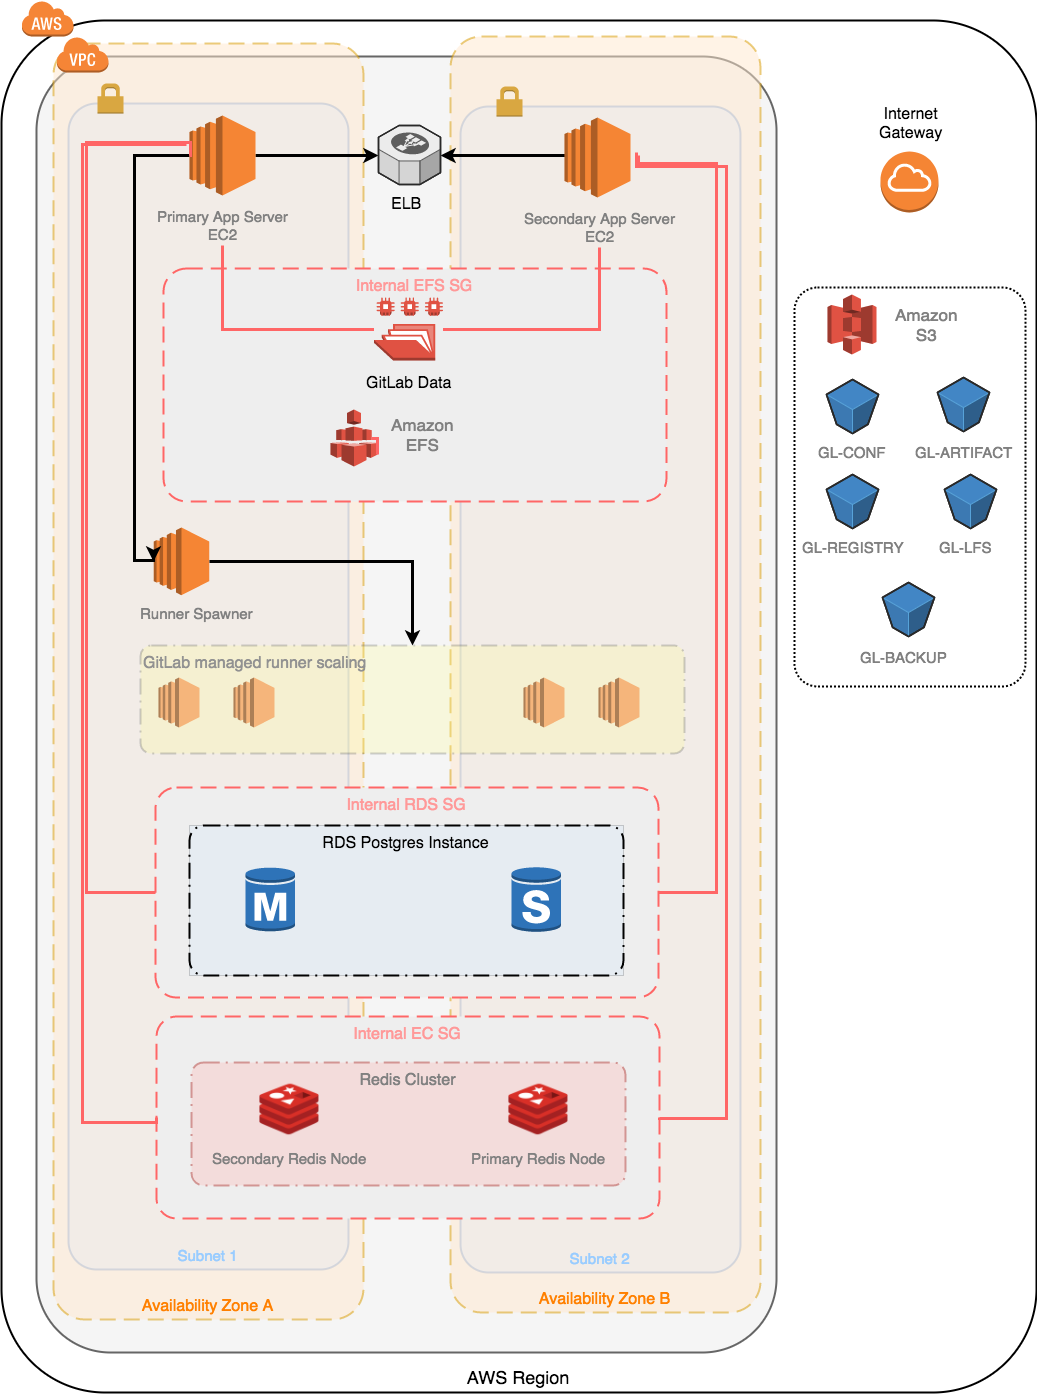 Architecture Overview of GitLab on AWS - Alois Barreras - Medium